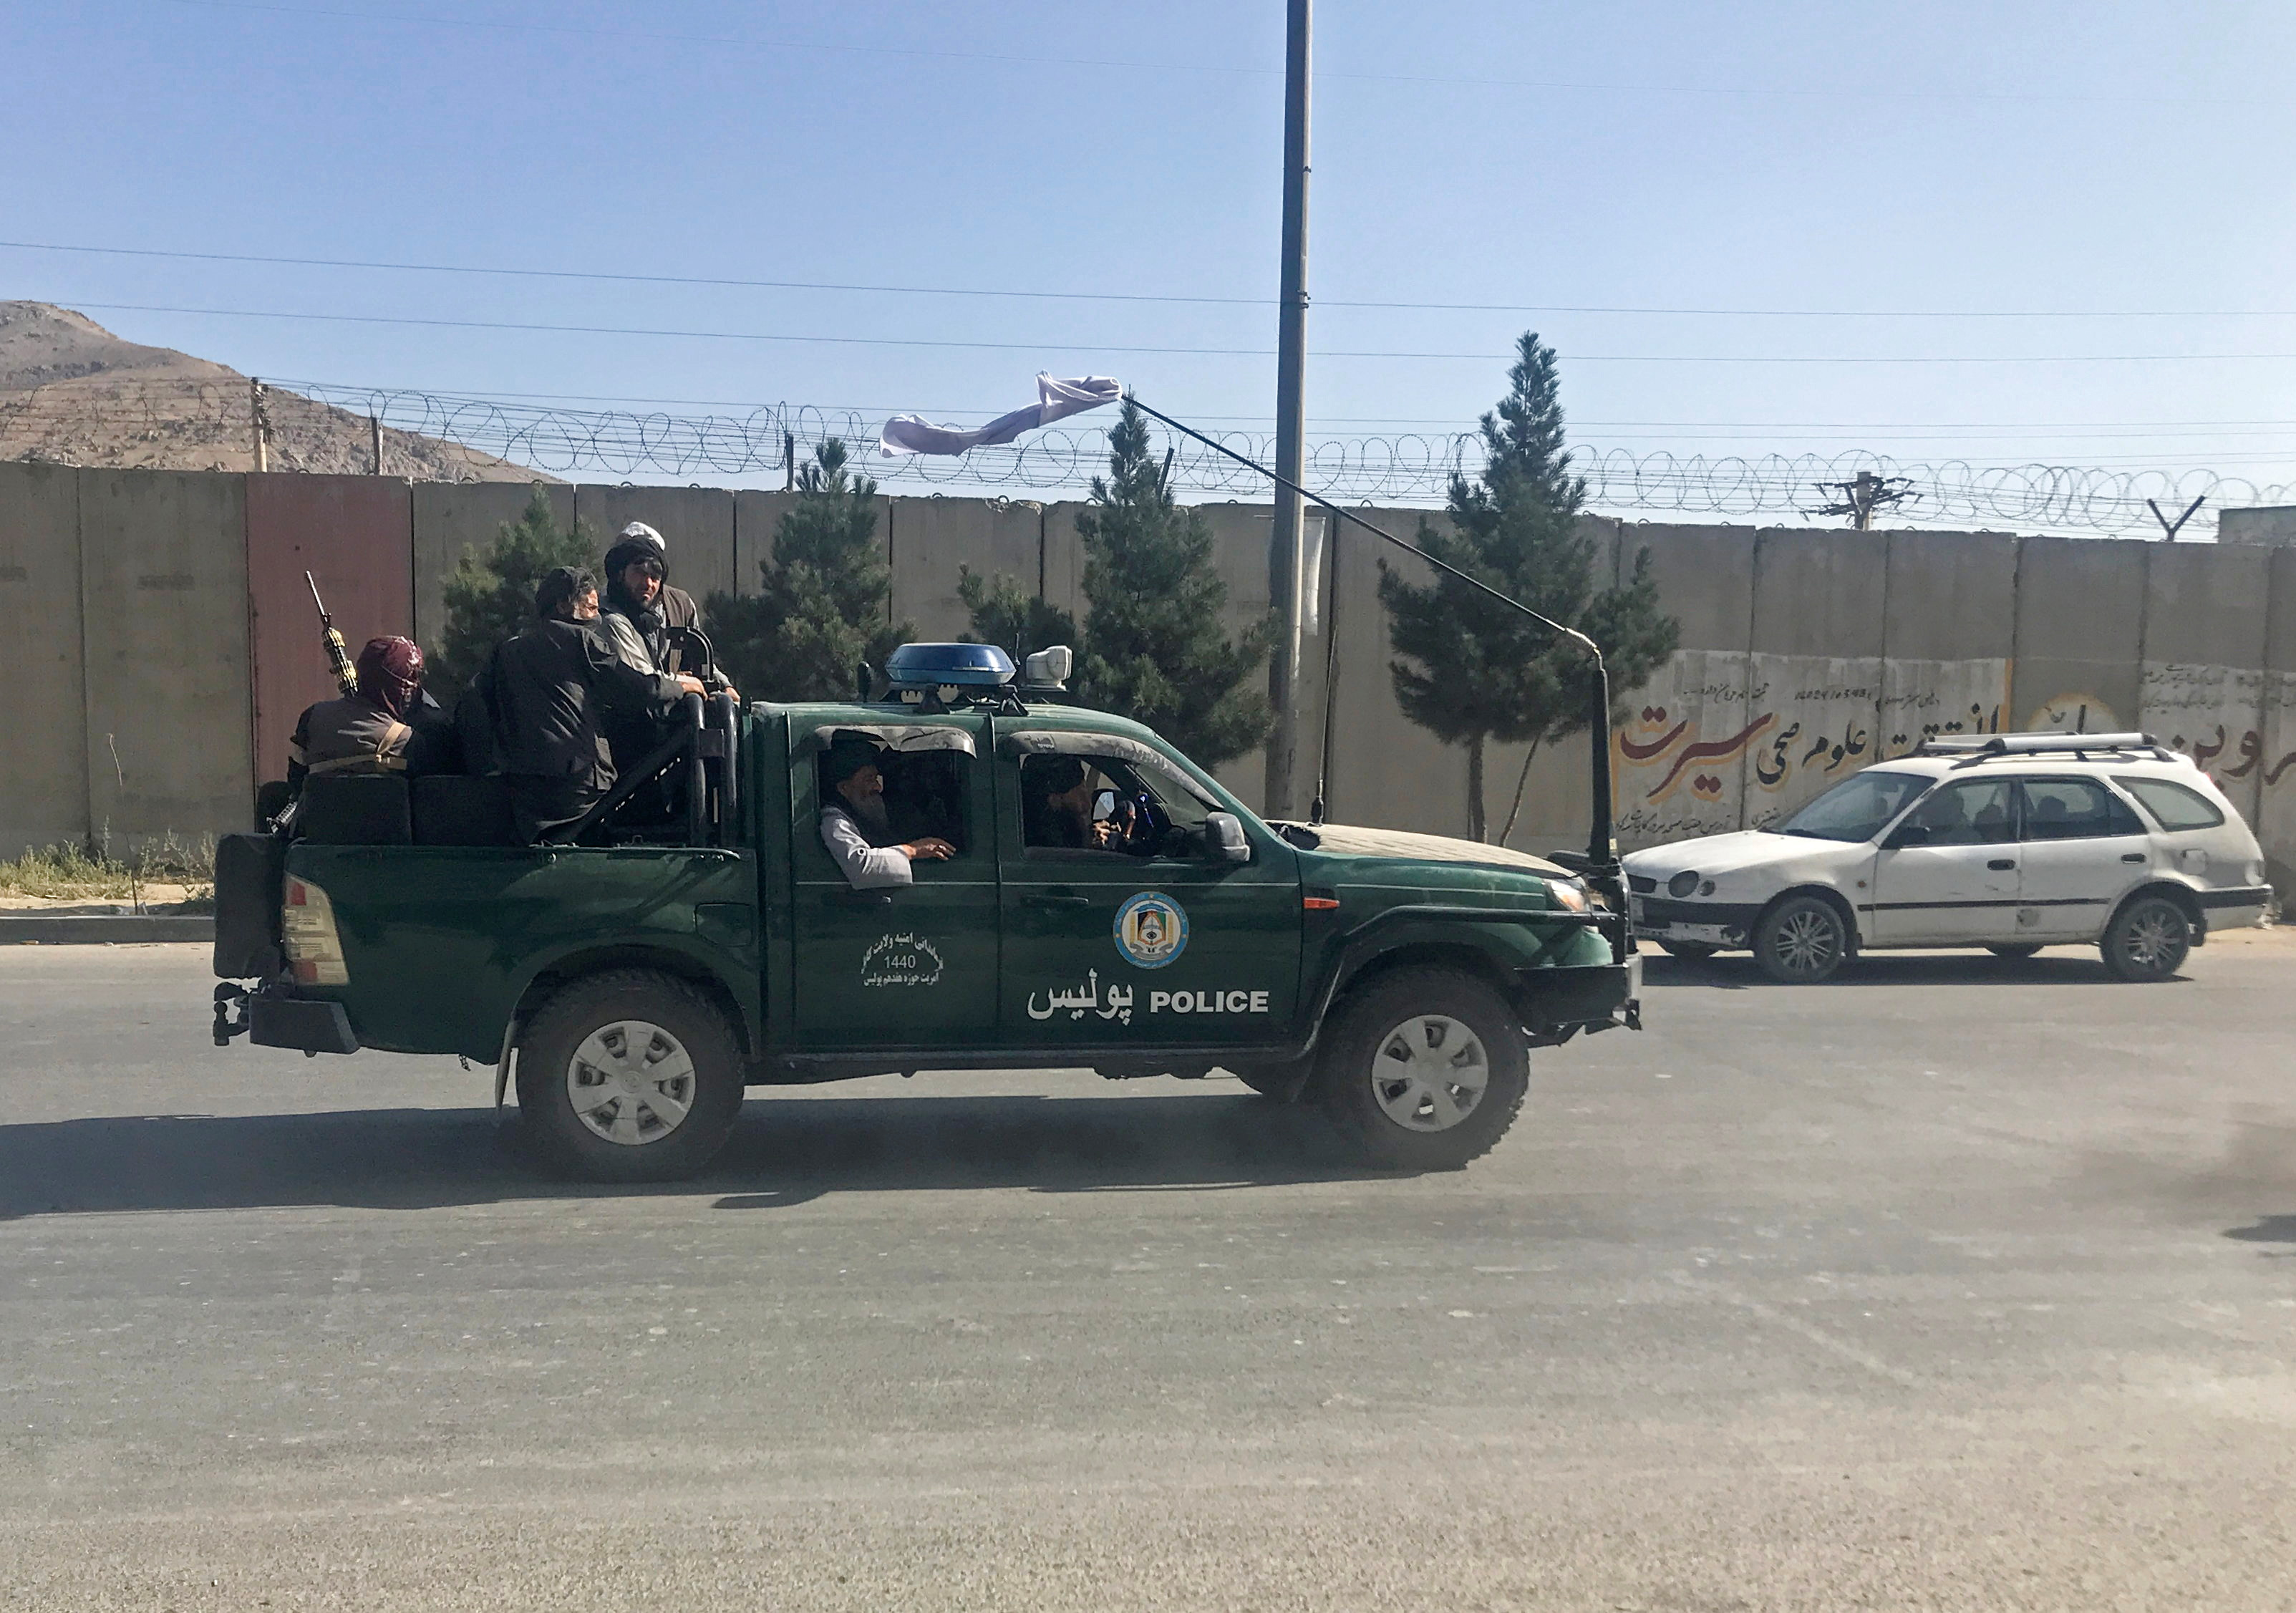 Taliban fighters ride on a police vehicle in Kabul, Afghanistan, August 16, 2021. REUTERS/Stringer